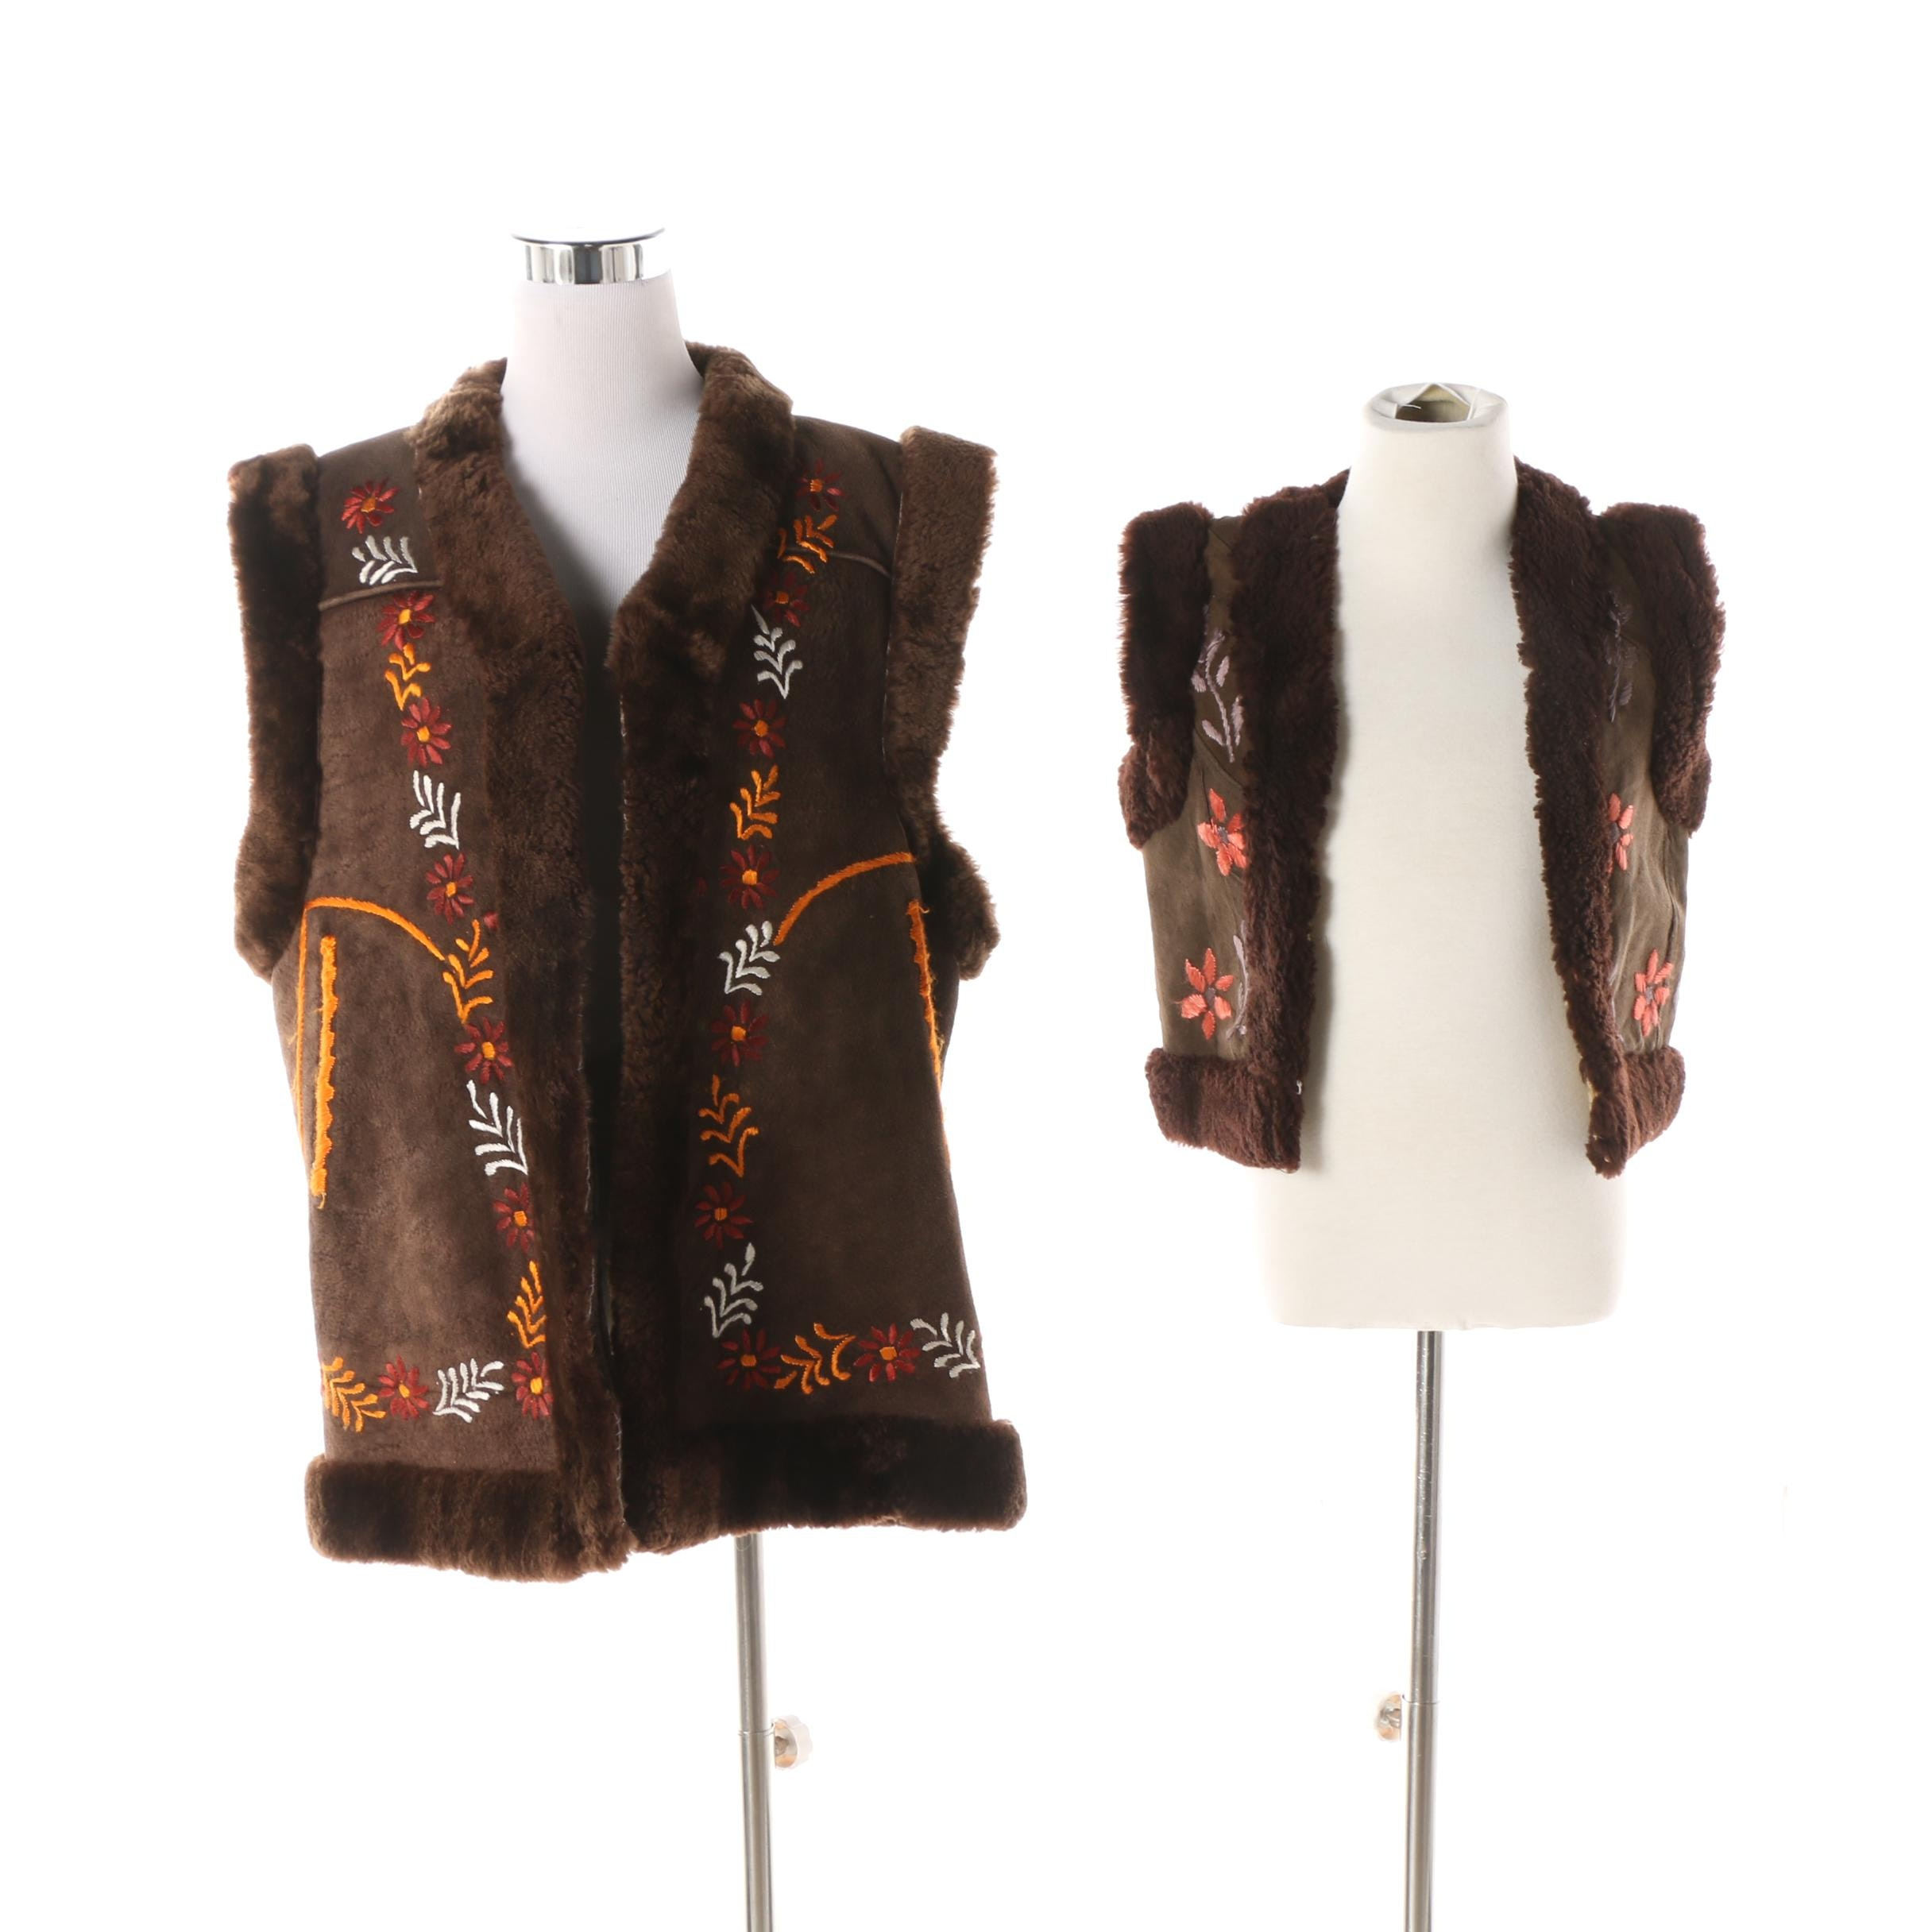 Unisex Adult and Children's Embroidered Brown Shearling Open Front Vests